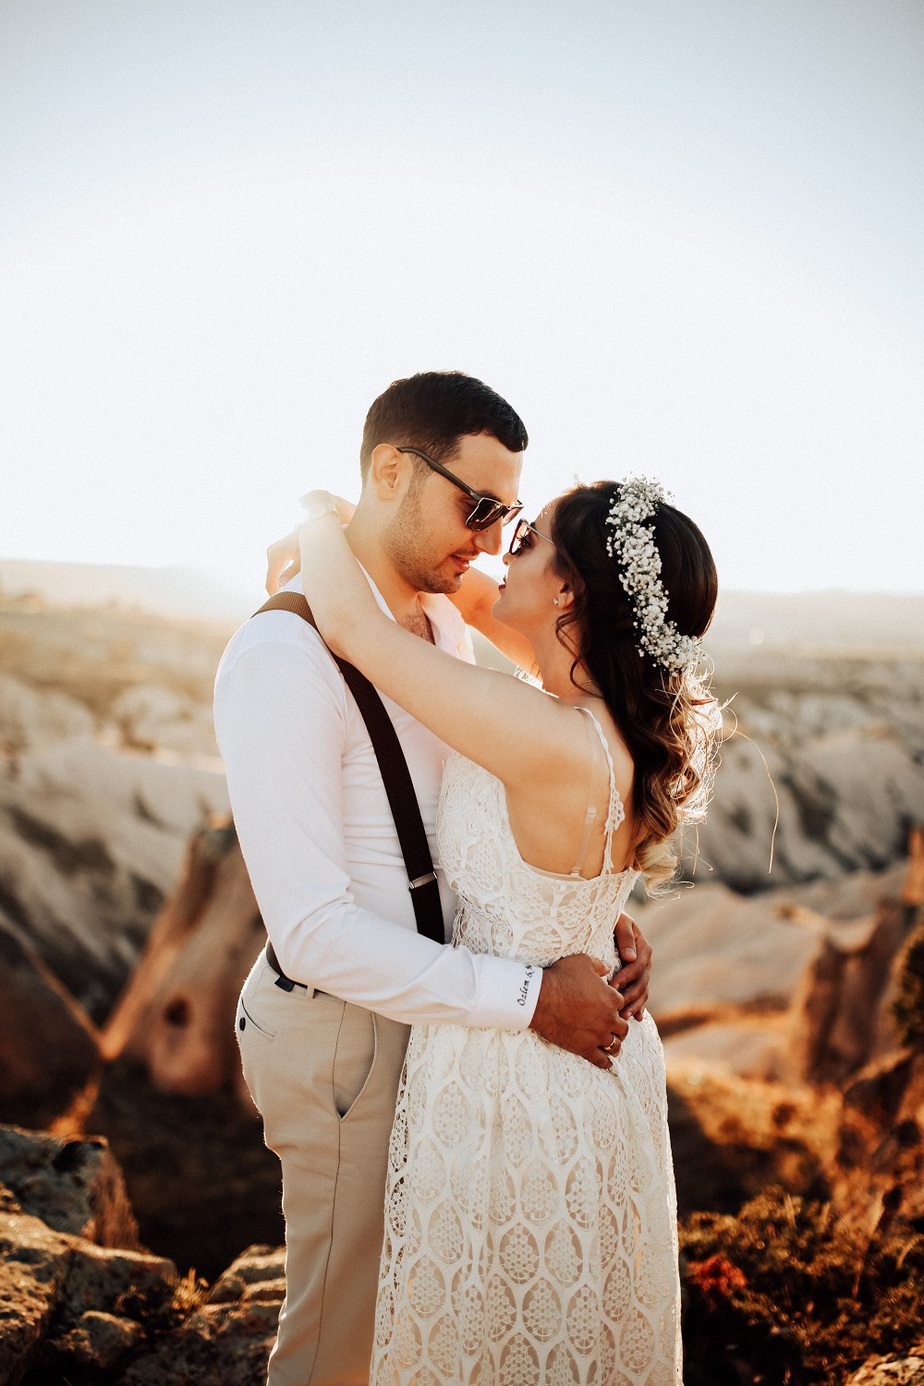 Subtle Signs He Likes You More Than A Friend! 7 Obvious Signs He Likes You How to Tell if A Guy Likes You, But is Trying Not to Show it. Signs a guy likes you more than a friend, It is however important to watch out for players.